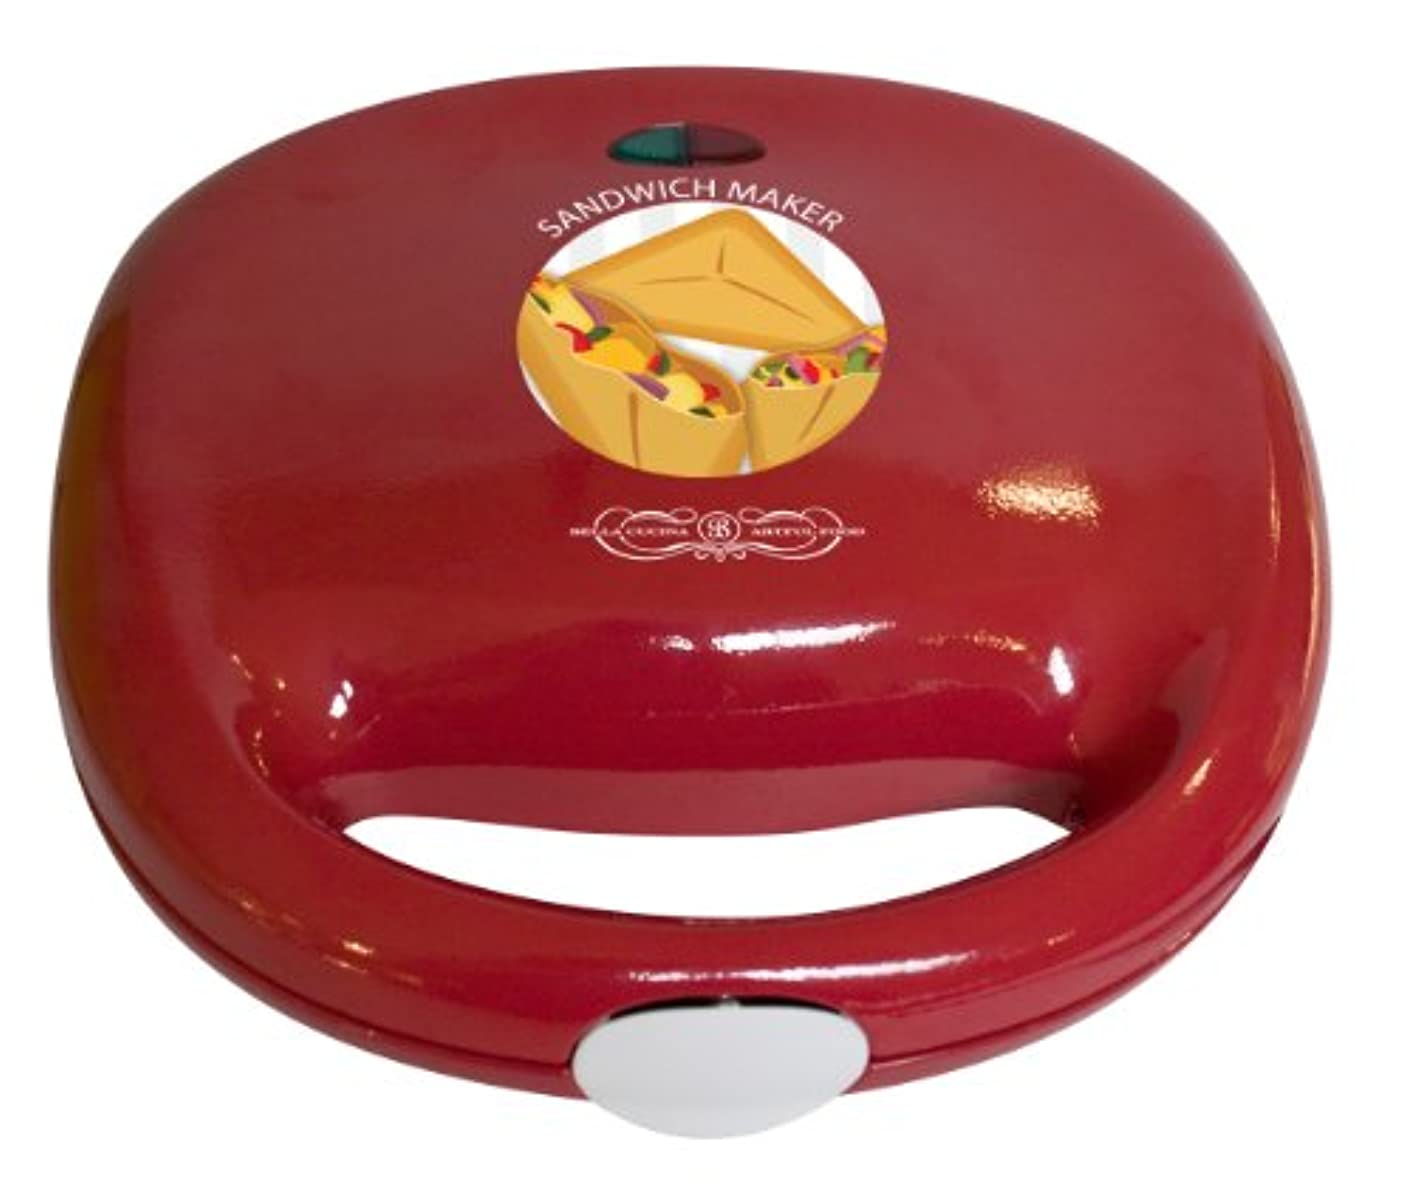 Bella Cucina 13502 Novelty Snack Maker